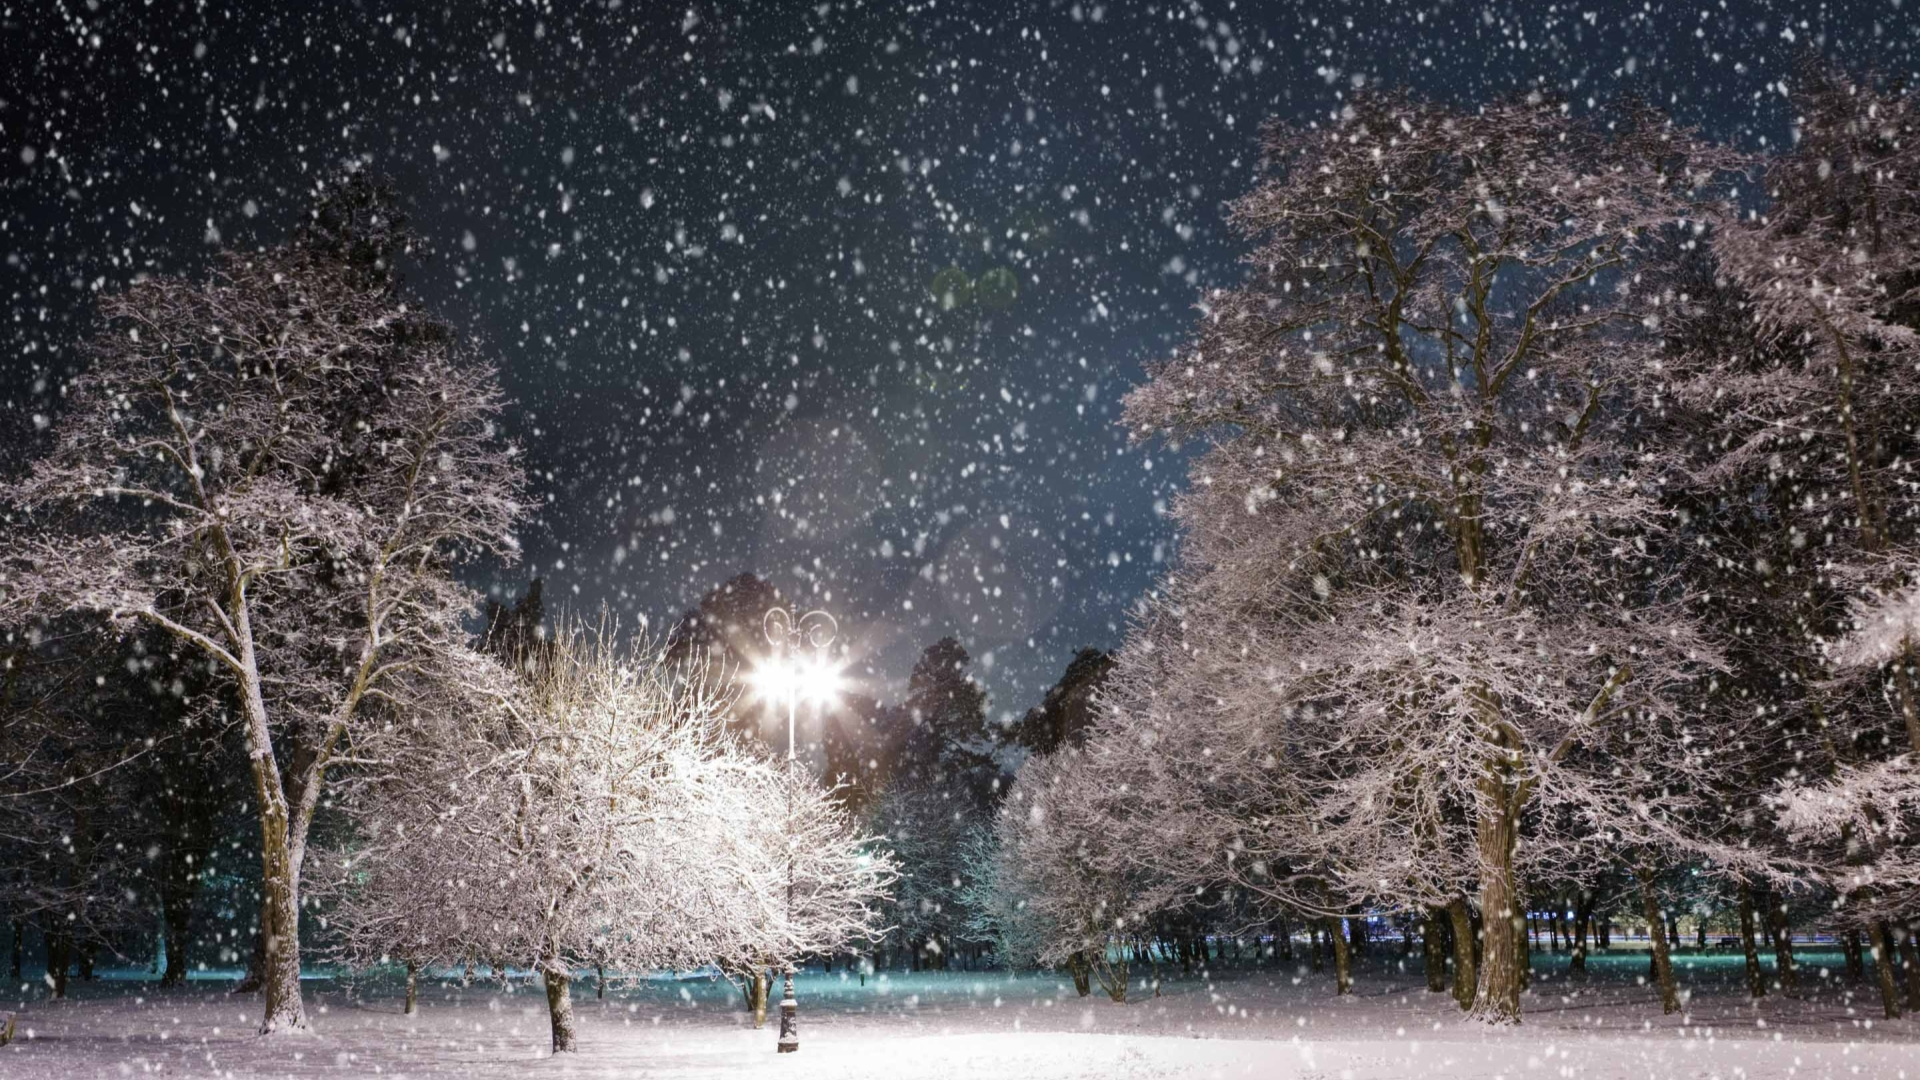 Winter Night Mac Wallpaper Download Mac Wallpapers Download 1920x1080